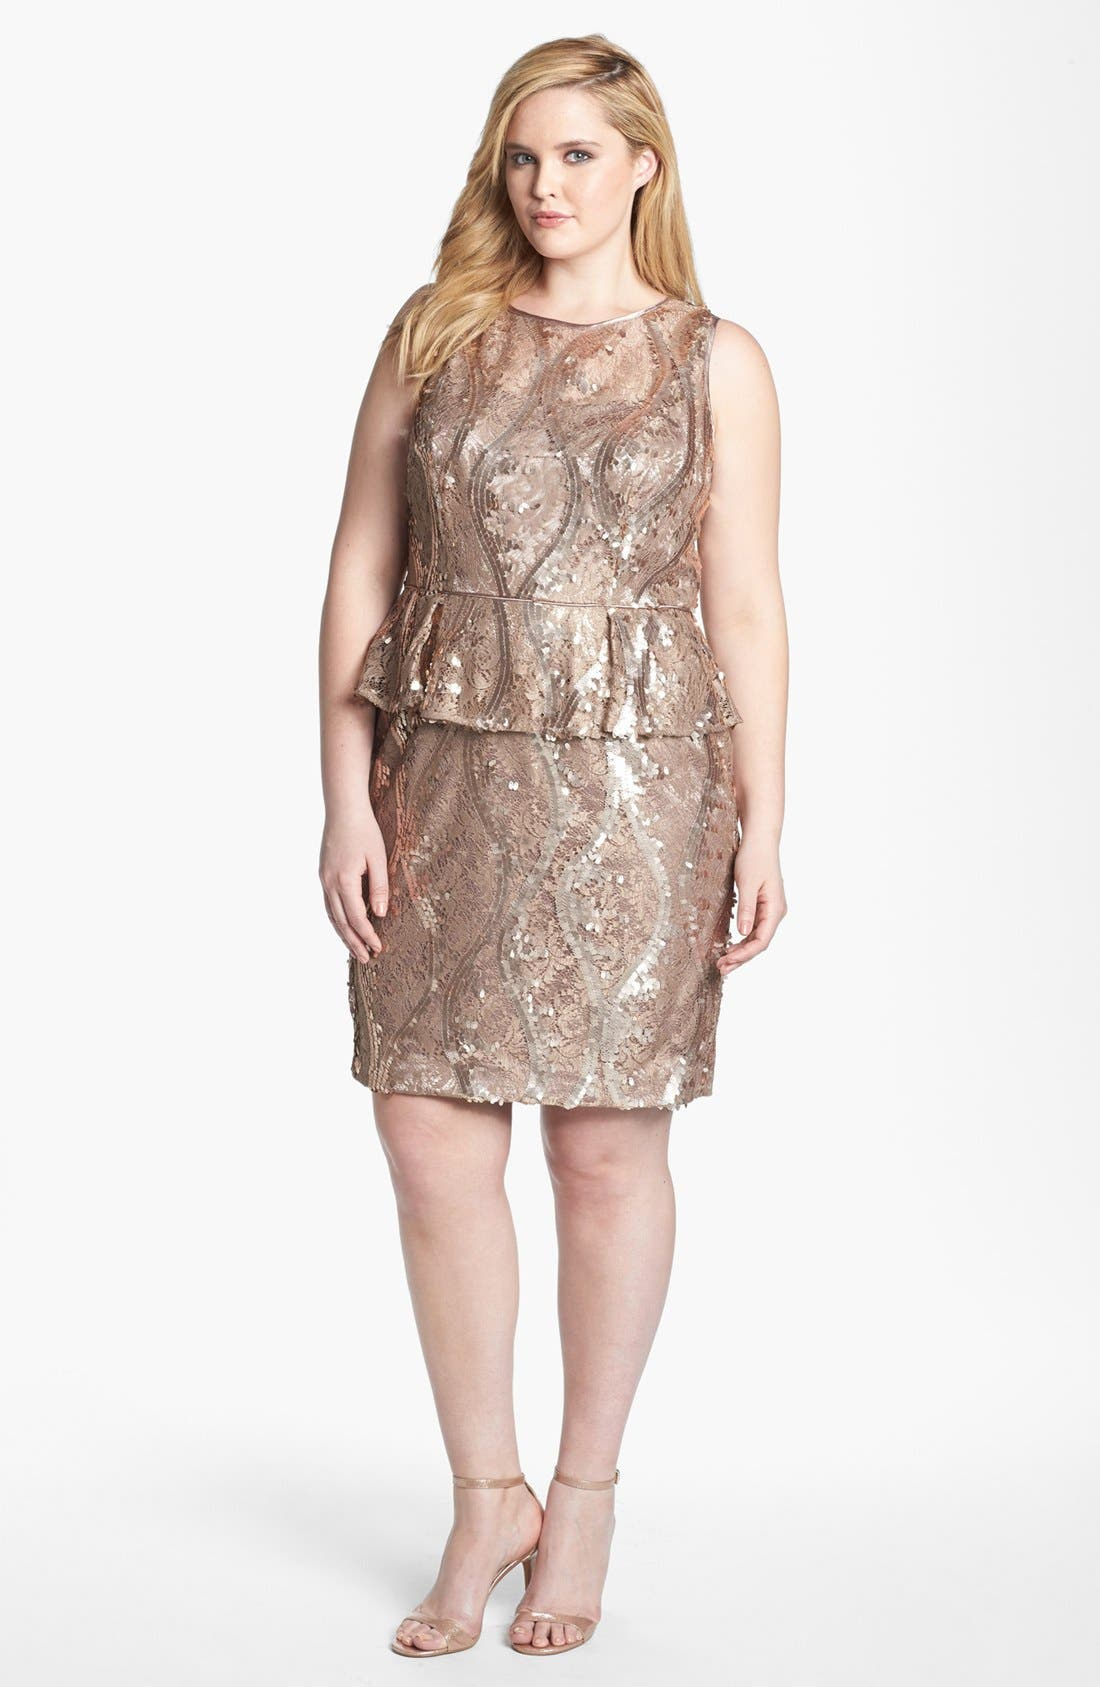 Main Image - Adrianna Papell Sequin & Lace Peplum Dress (Plus Size)